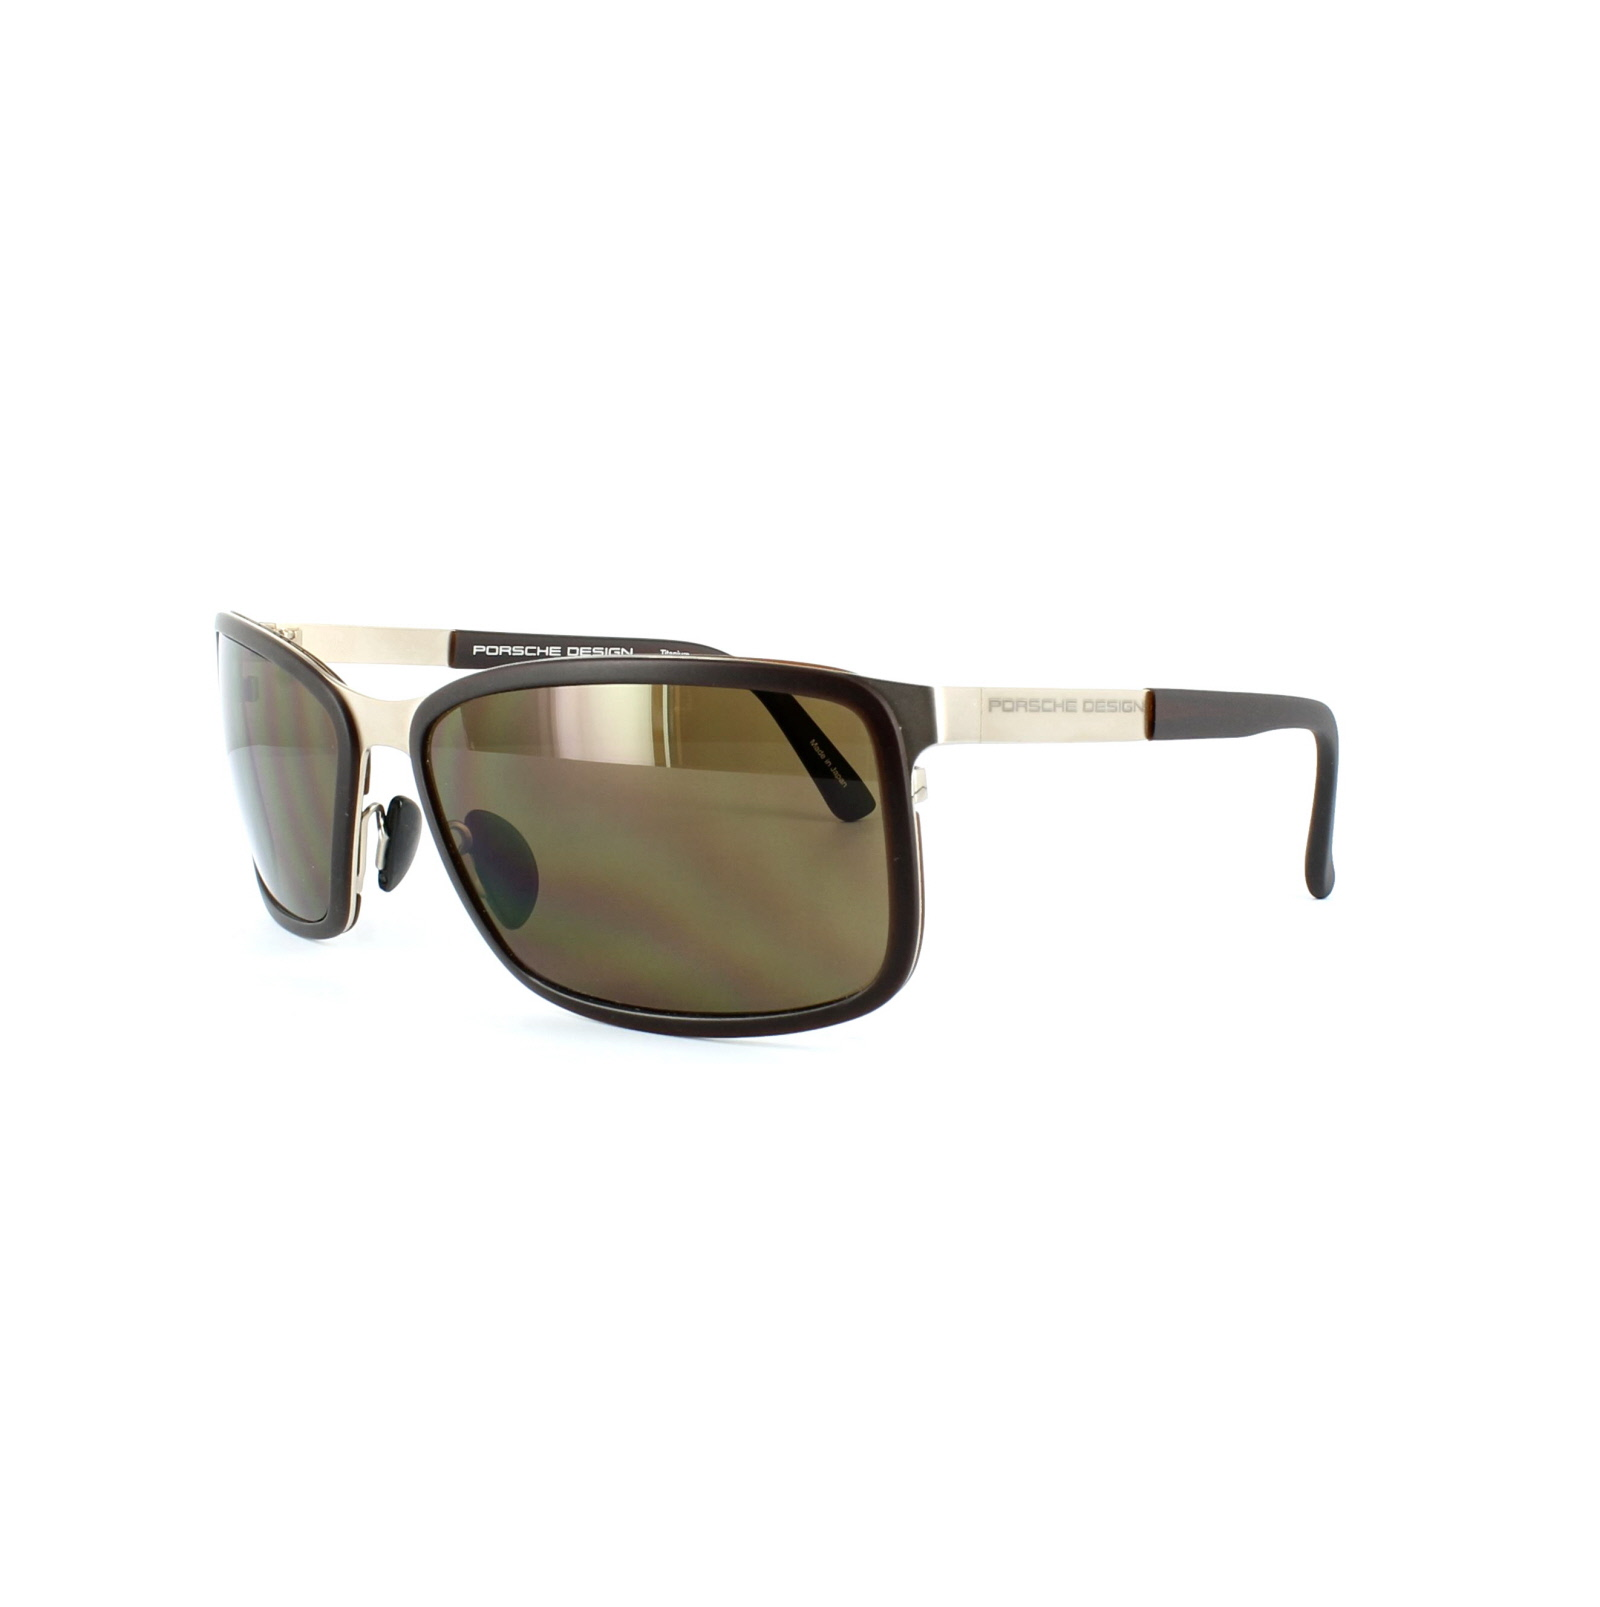 03145aa98bc Sentinel Porsche Design Sunglasses P8552 C Gold   Brown Brown